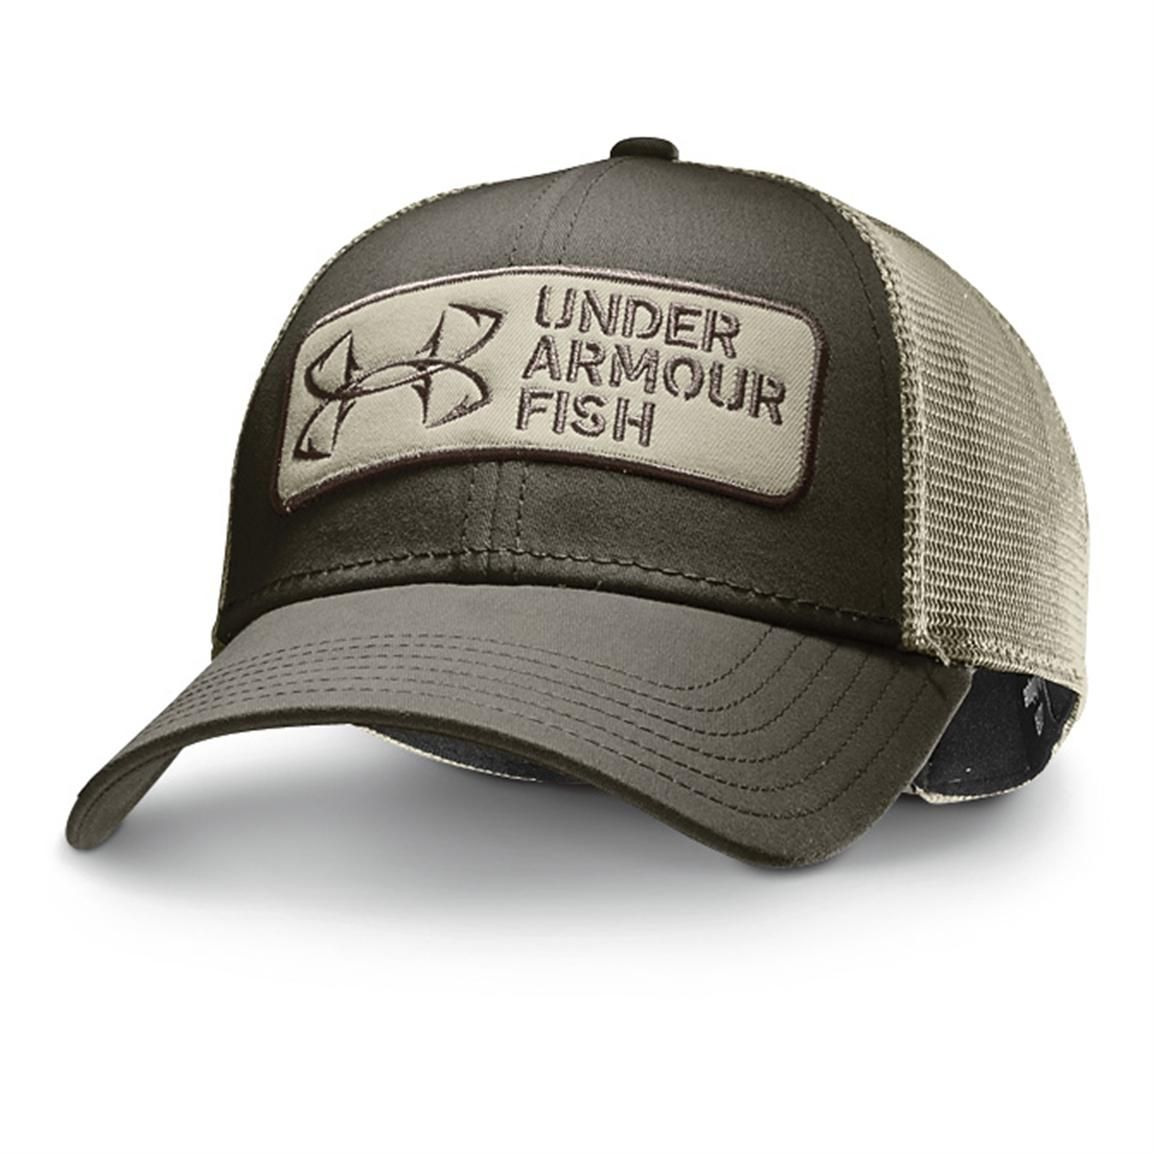 Under Armour® Fish Hook Patch Hat fbac0dee88c0